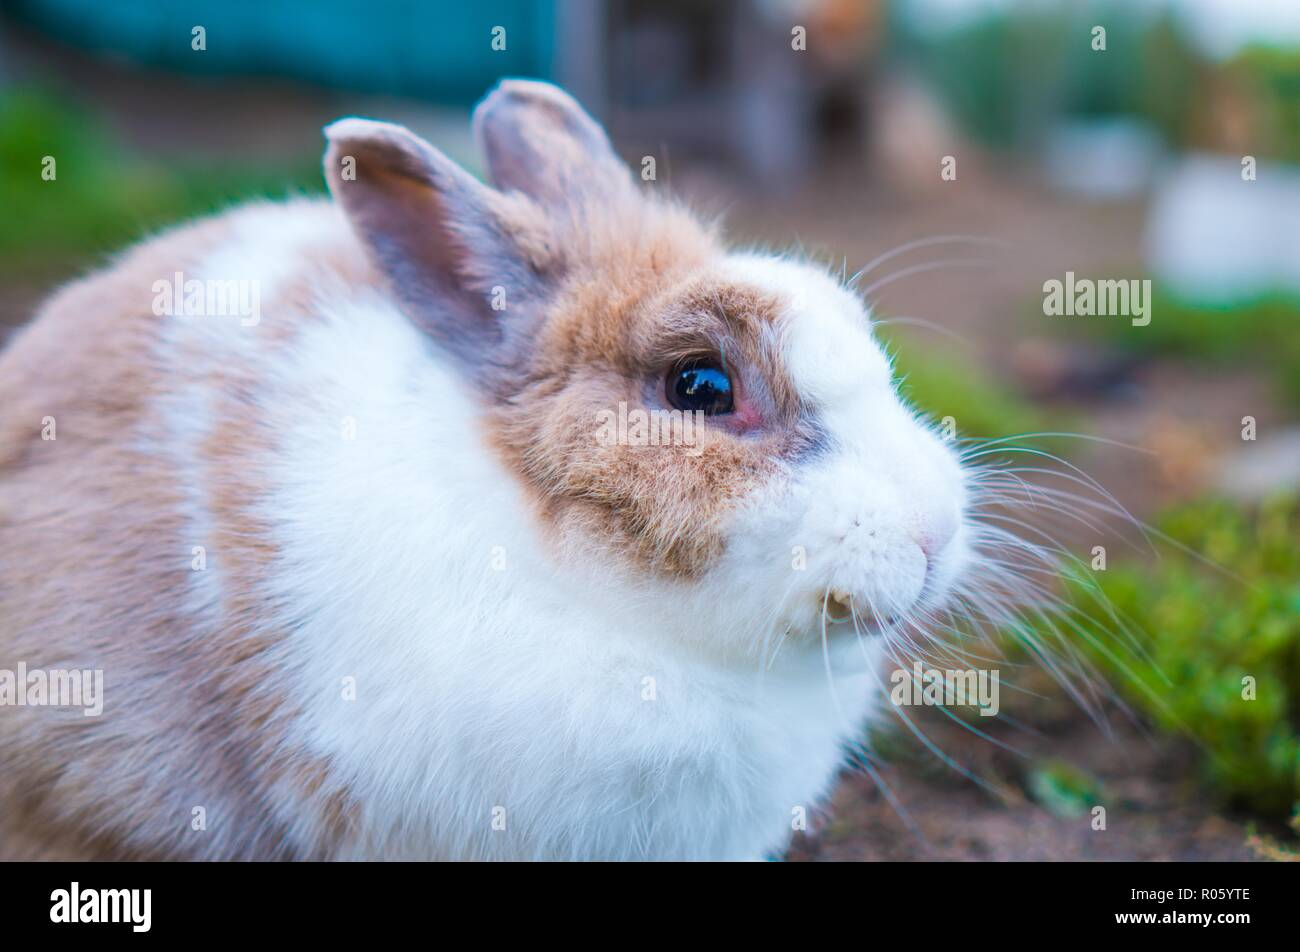 A white hairy rabbit rests outdoors Stock Photo